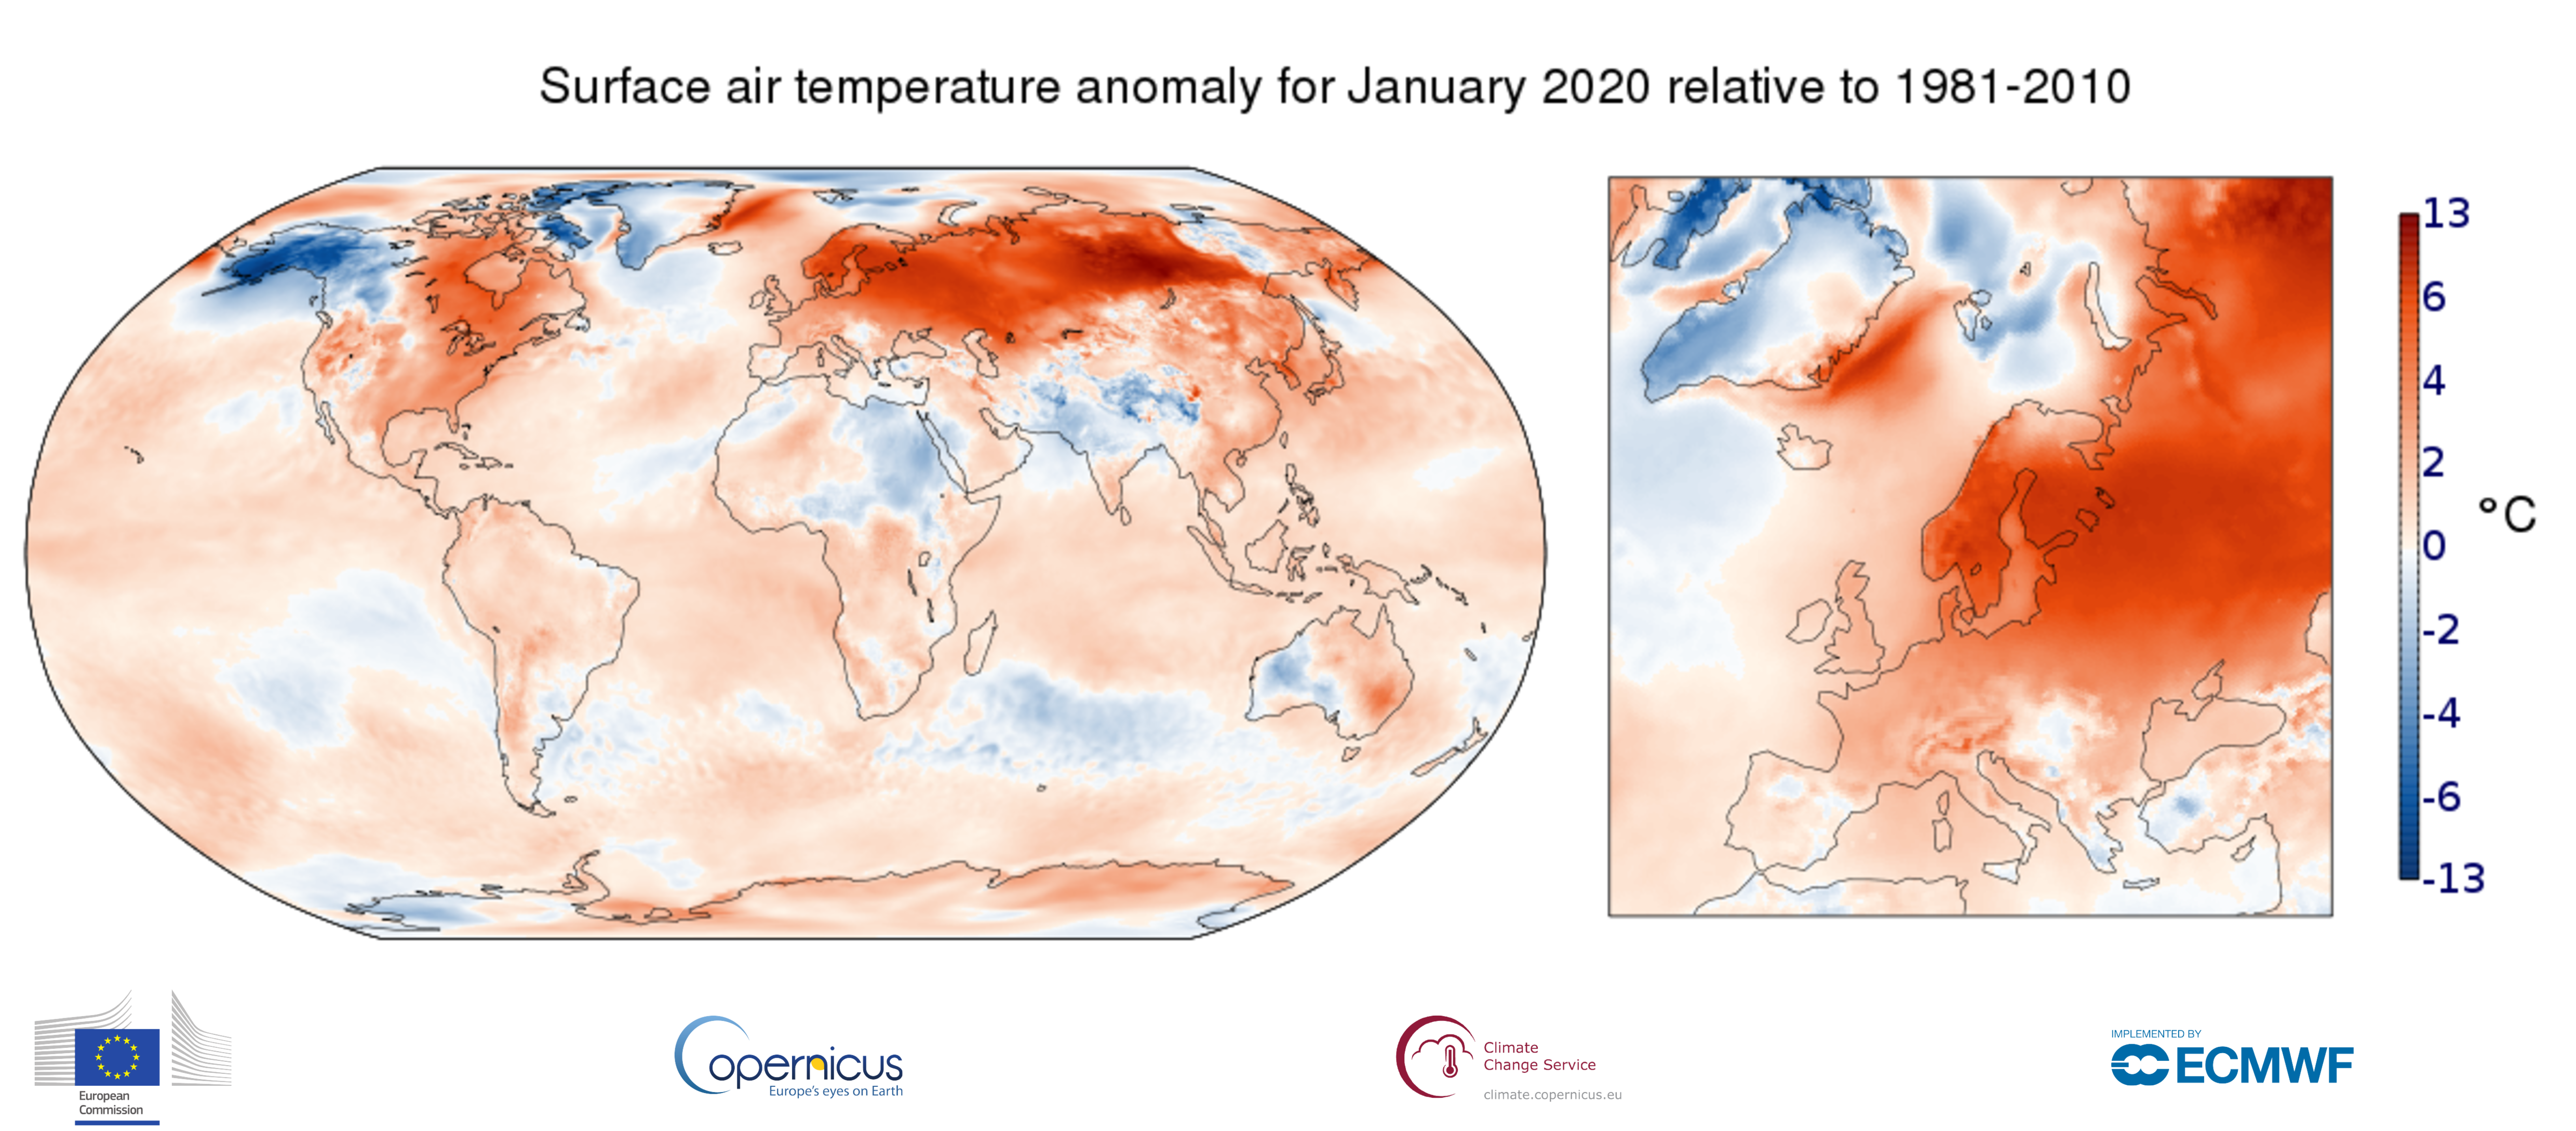 January 2020 is warmest on record, per Copernicus ECMWF